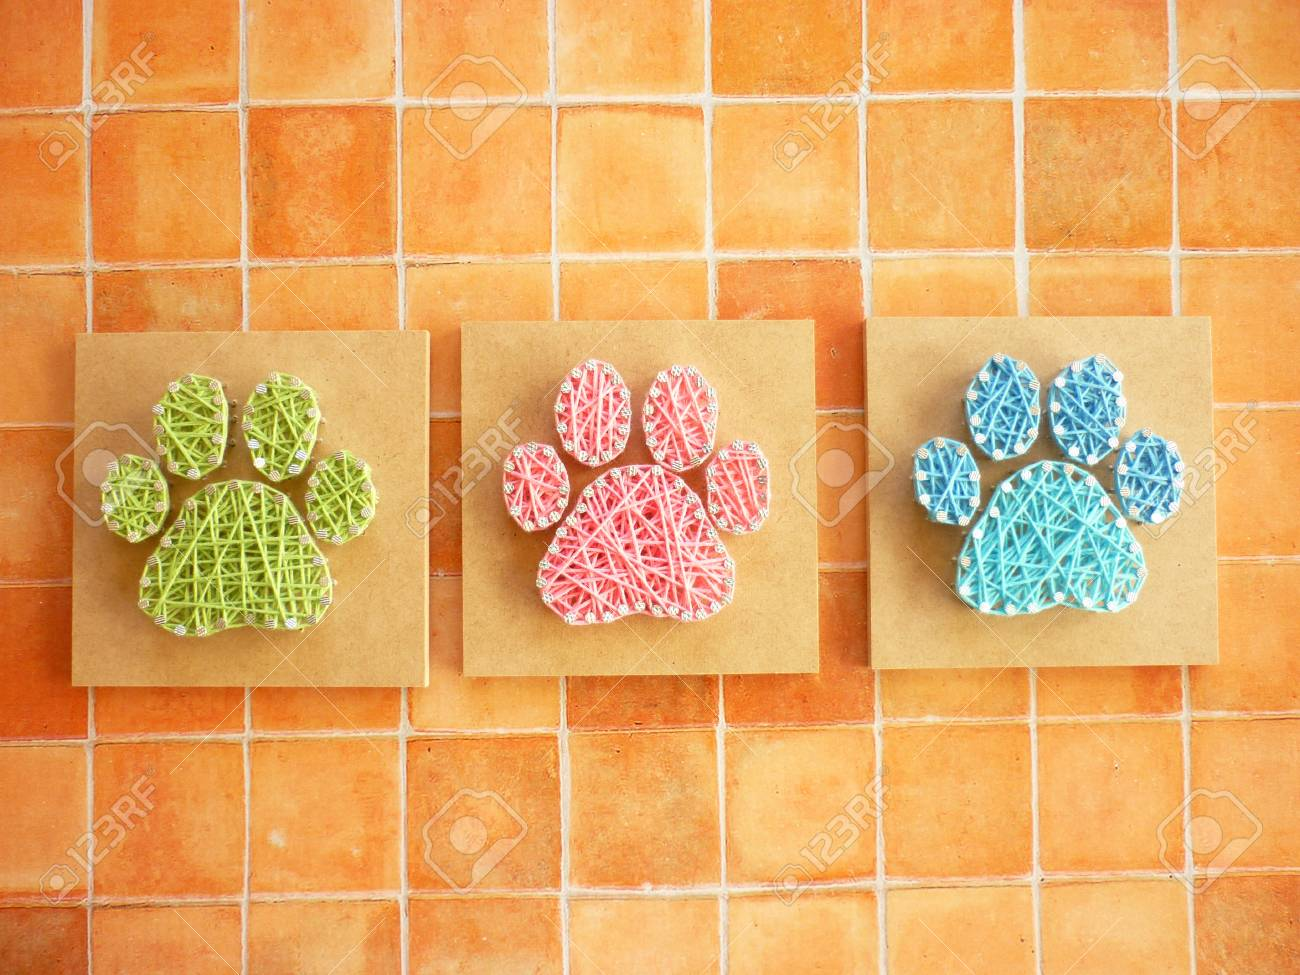 String Art Of Dog Footprints Stock Photo, Picture And Royalty Free ...